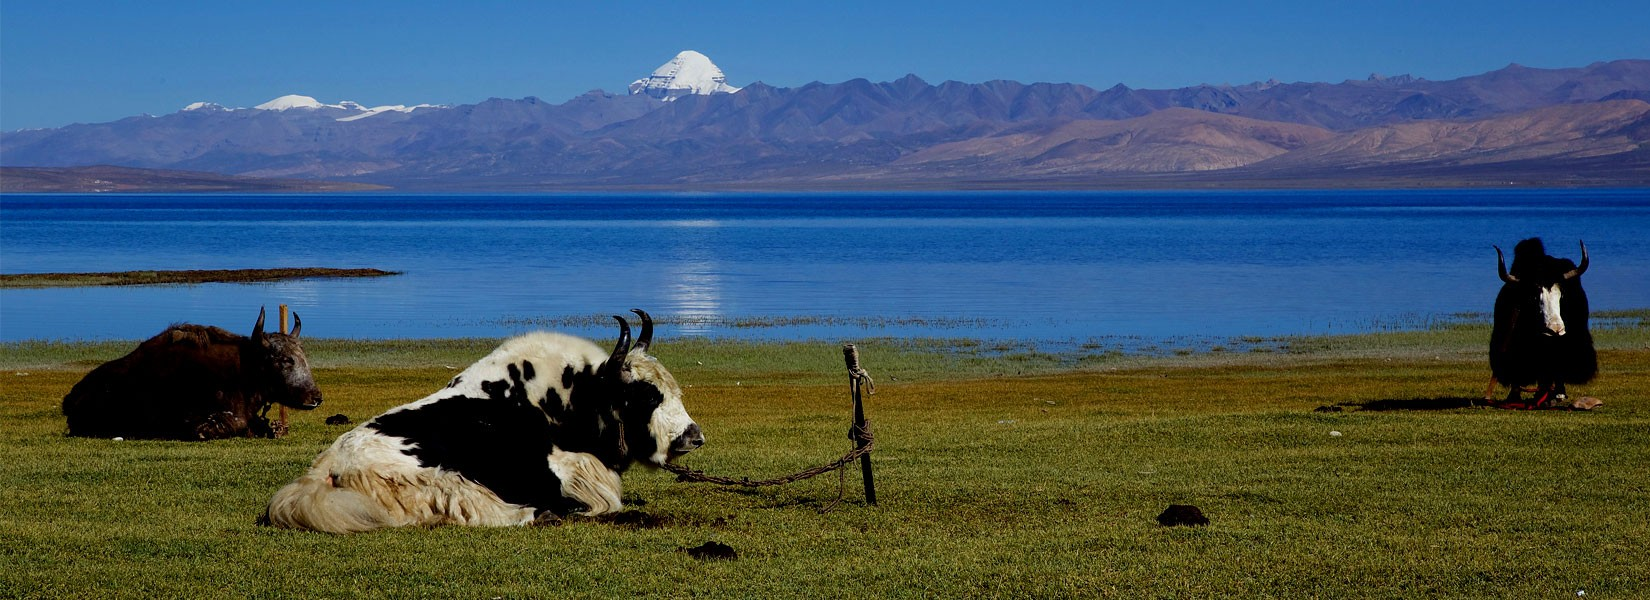 Tibet Mount Kailash Manosarobar Lake Tour